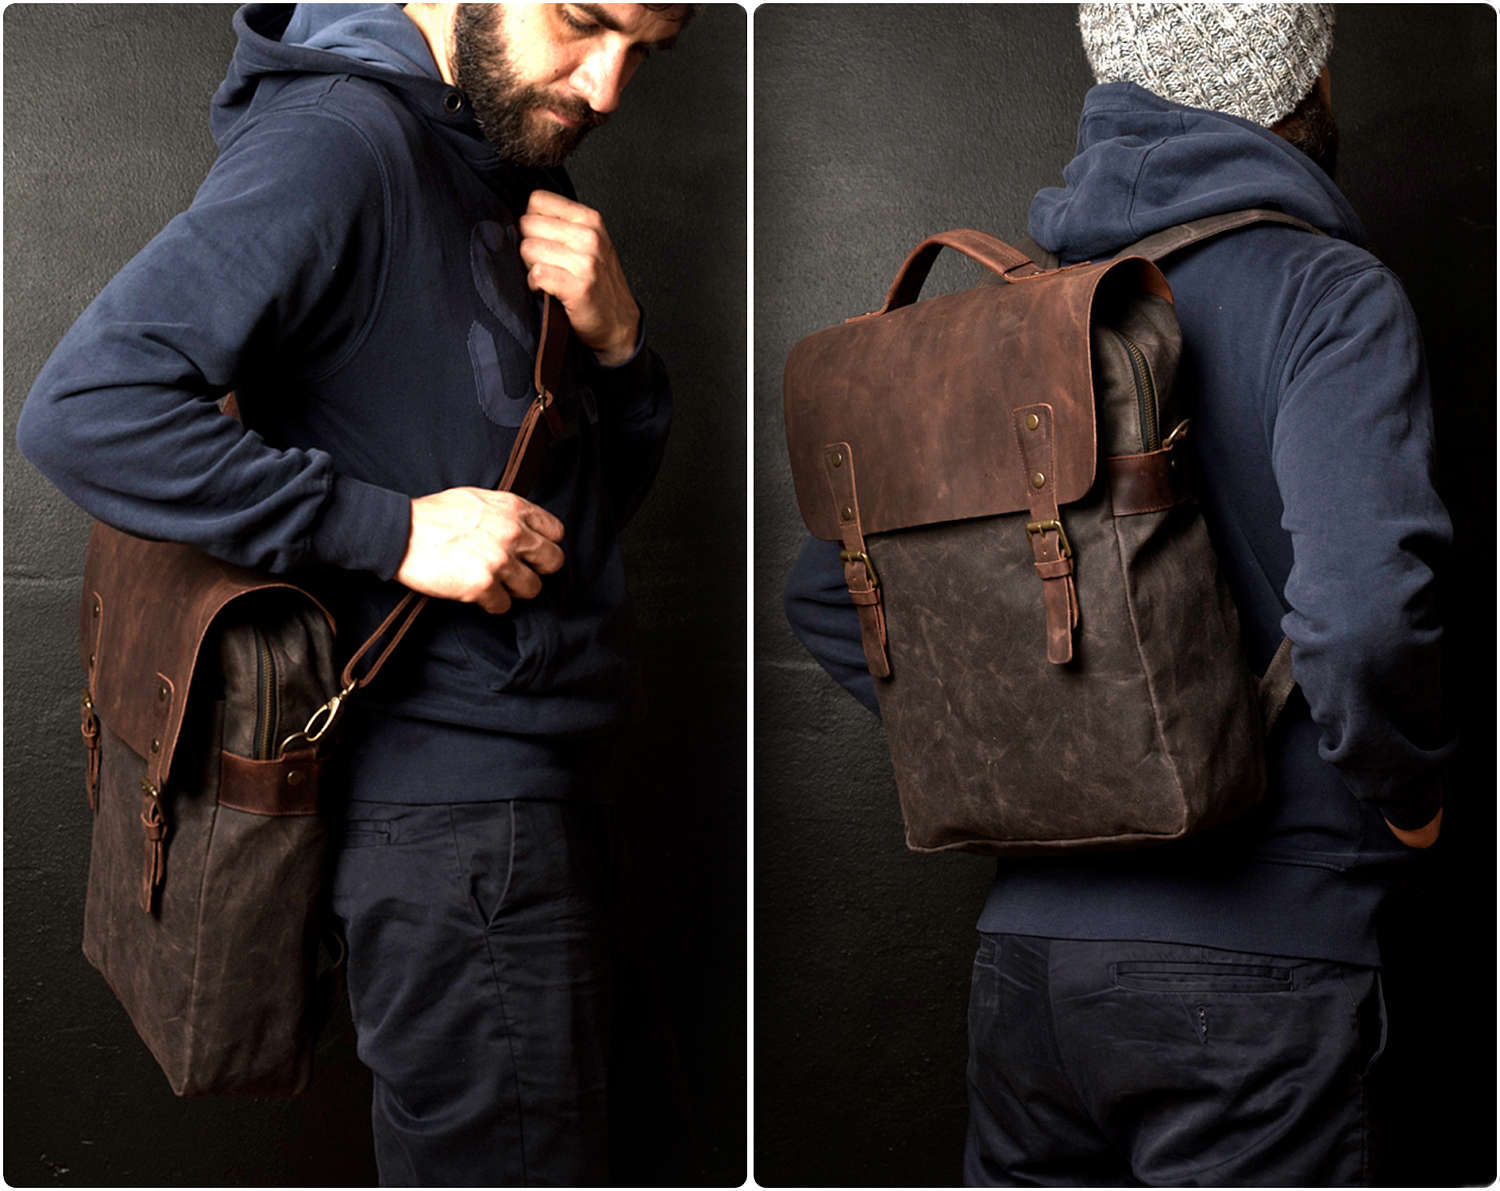 Waxed Canvas Backpack Canvas Bag Leather Backpack Travel   Etsy 36ba1bec99